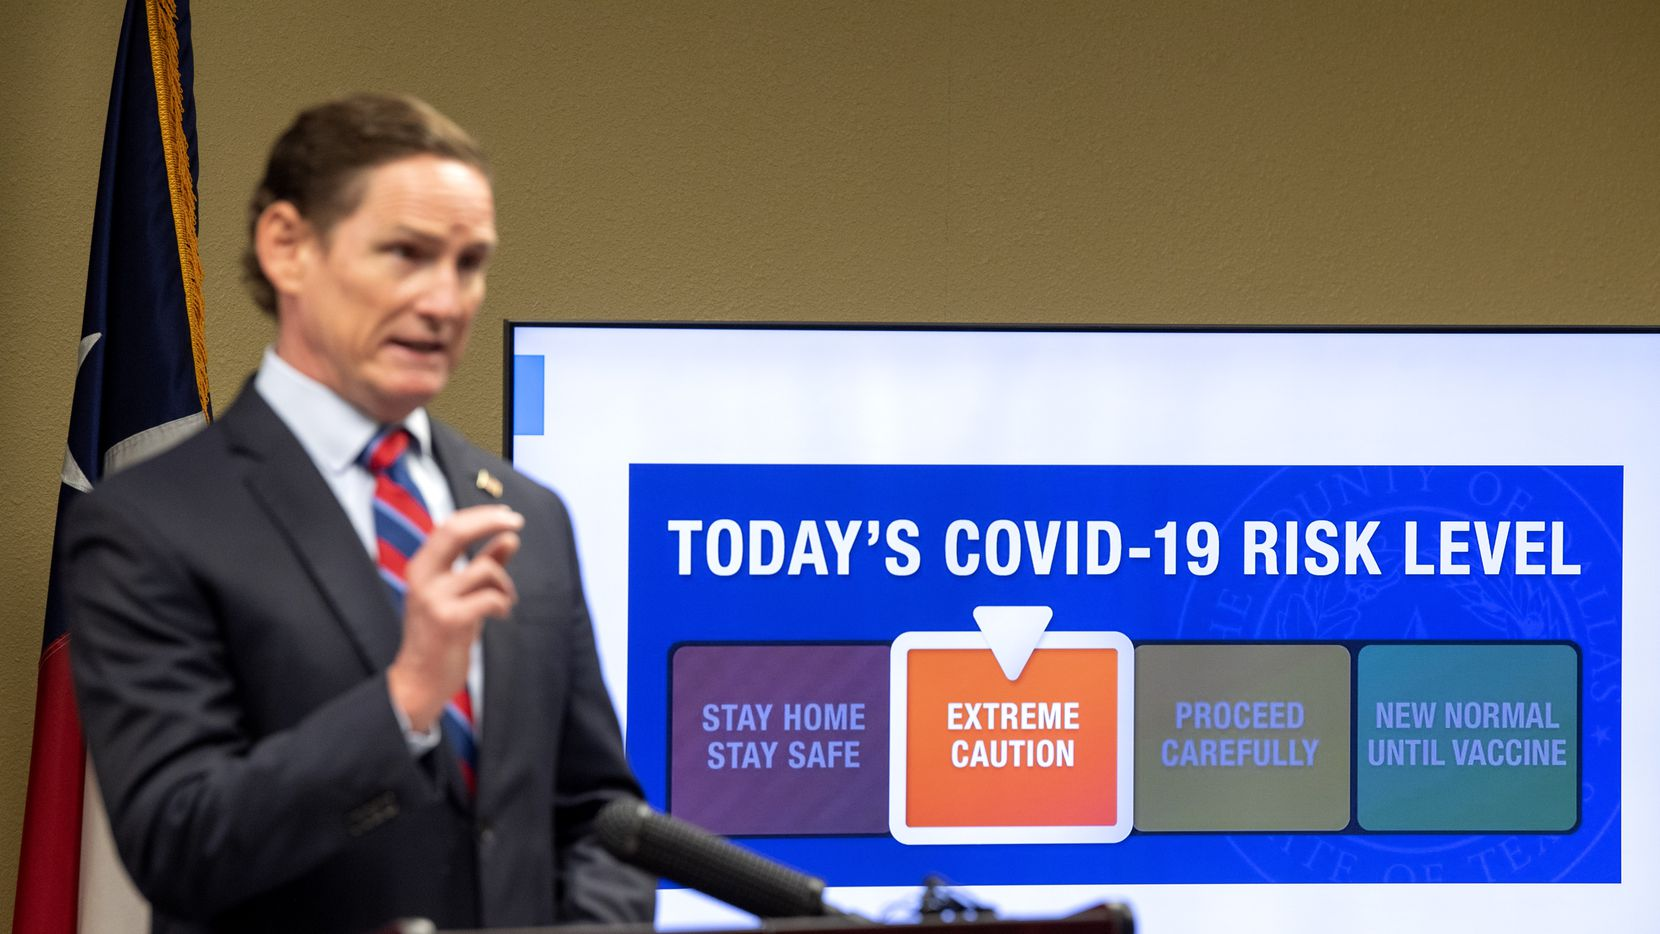 Dallas County Judge Clay Jenkins announced a shift from red to orange in the COVID-19 risk level during a news conference Wednesday, Sept. 2 at the Dallas County Emergency Operations Center in Dallas. (Jeffrey McWhorter/Special Contributor)